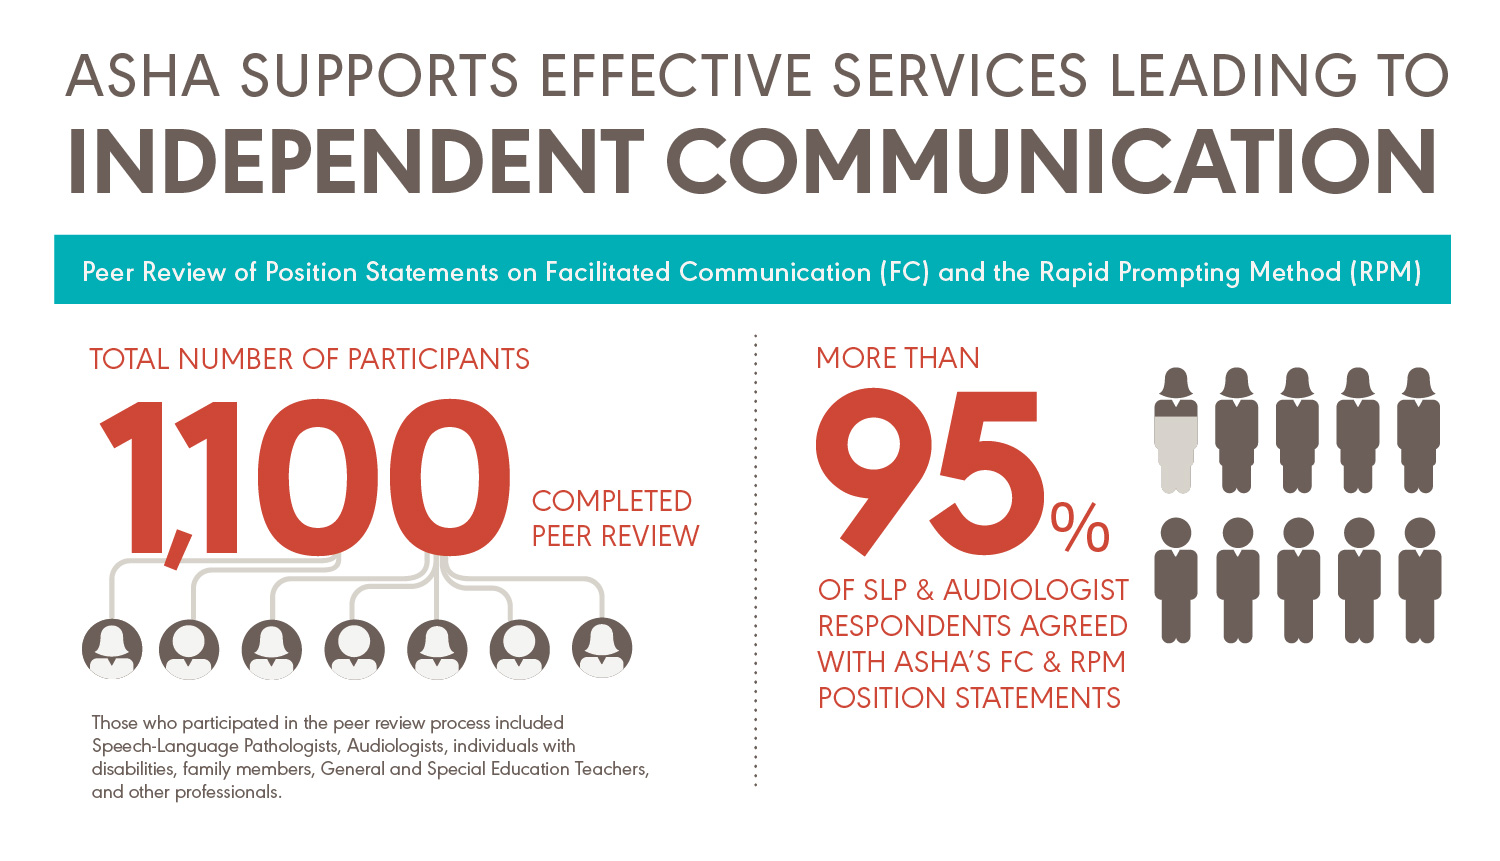 Independent Communication Infographic